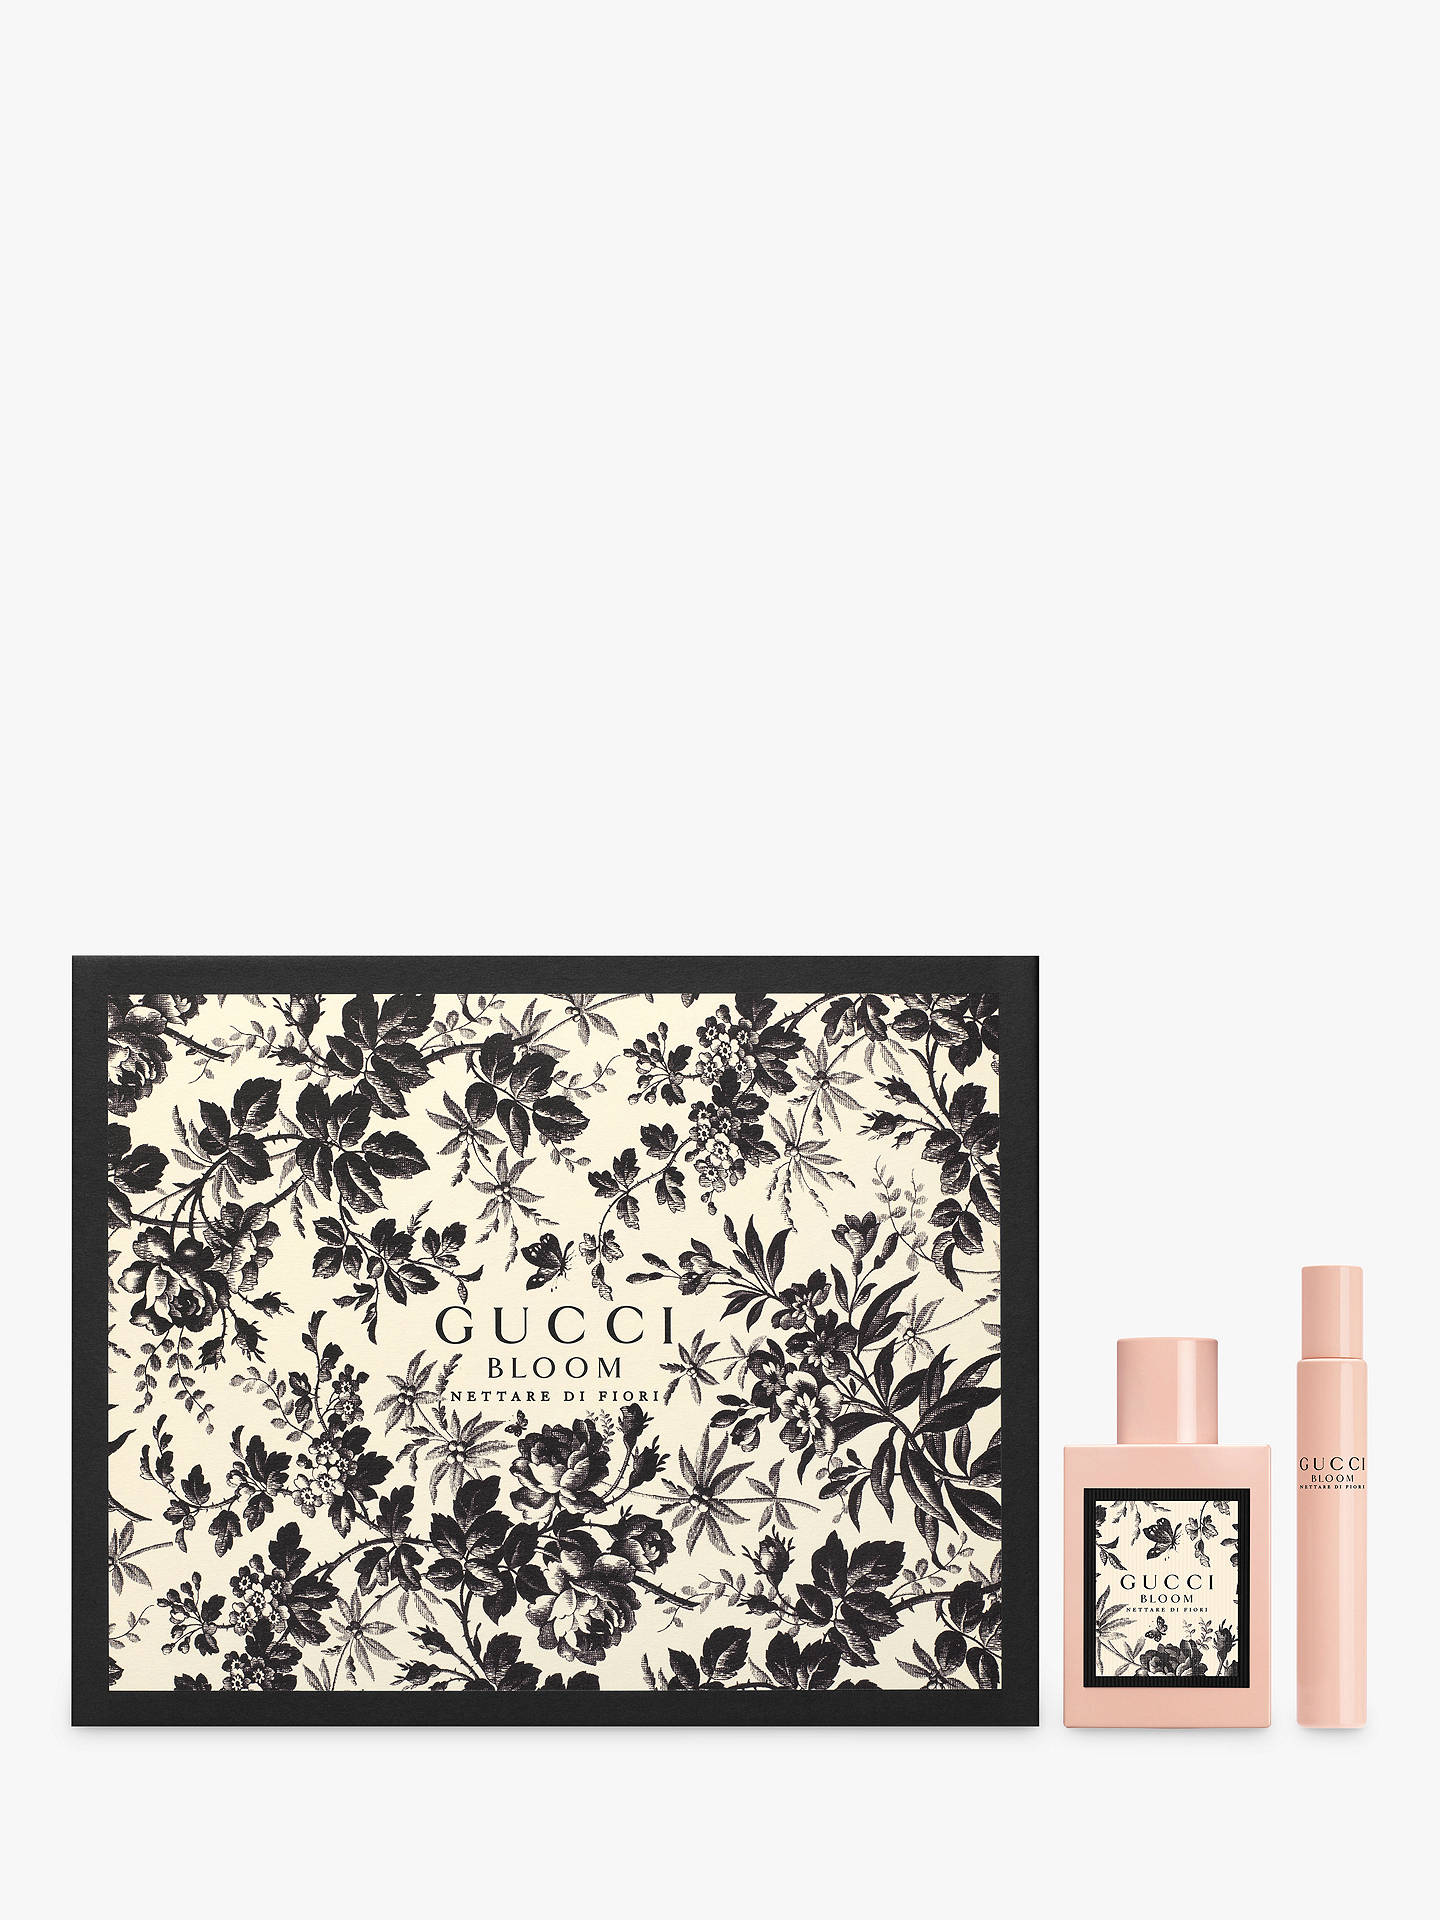 Gucci Bloom Nettare di Fiori 50ml Eau de Parfum Fragrance Gift Set ... ba9c2d6b97